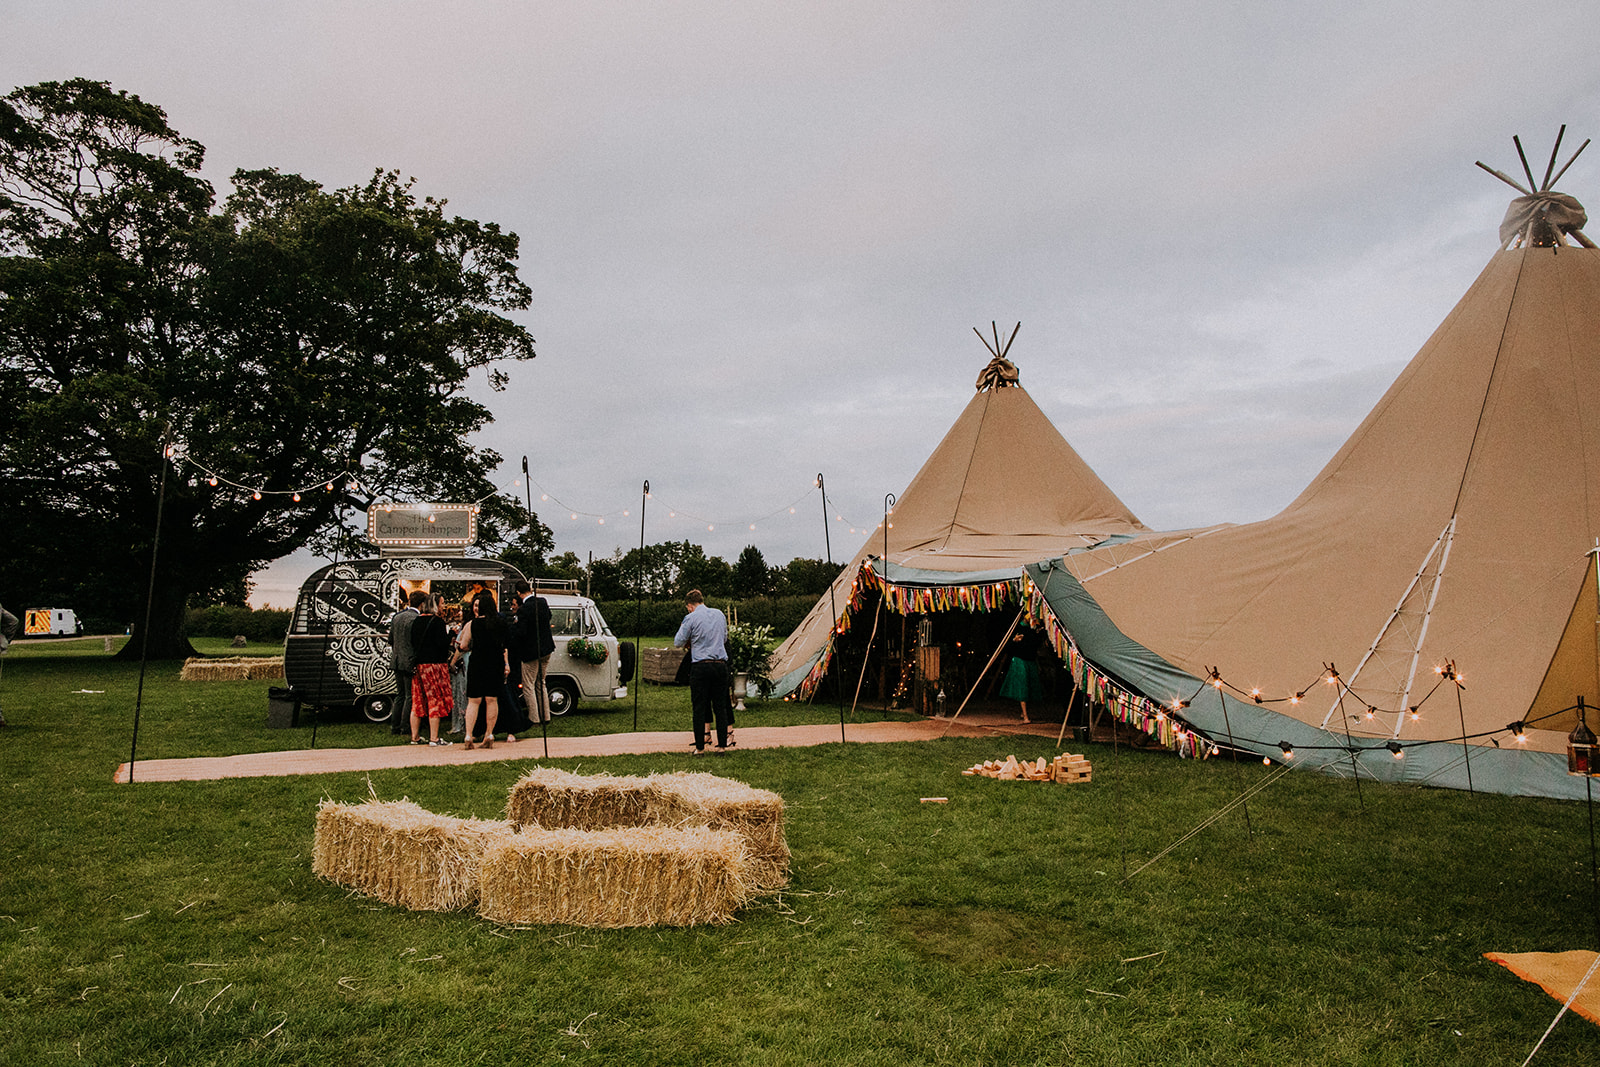 Cattows Farm wedding with Teepees, bales seating and burrito van